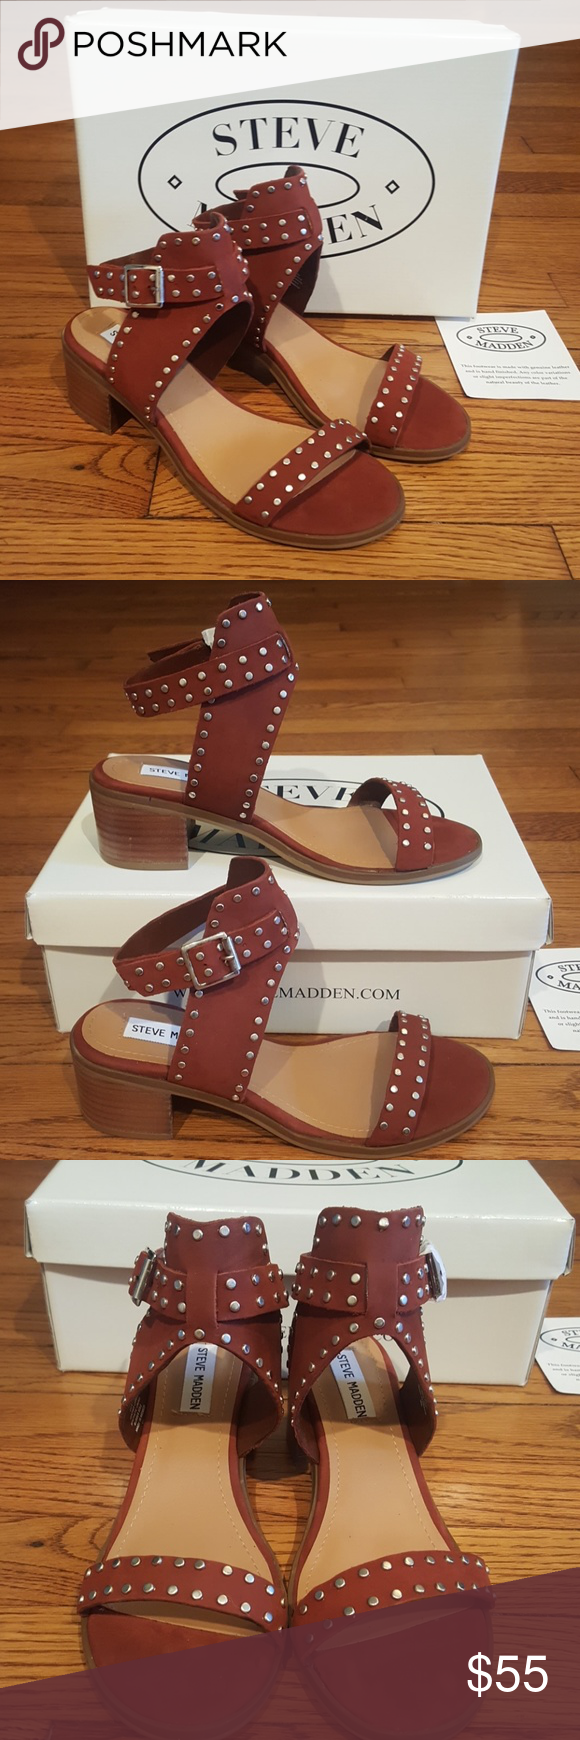 79dd2f72e87c20 New Steve Madden Gila Leather Studded Sandals Rust (color) 2